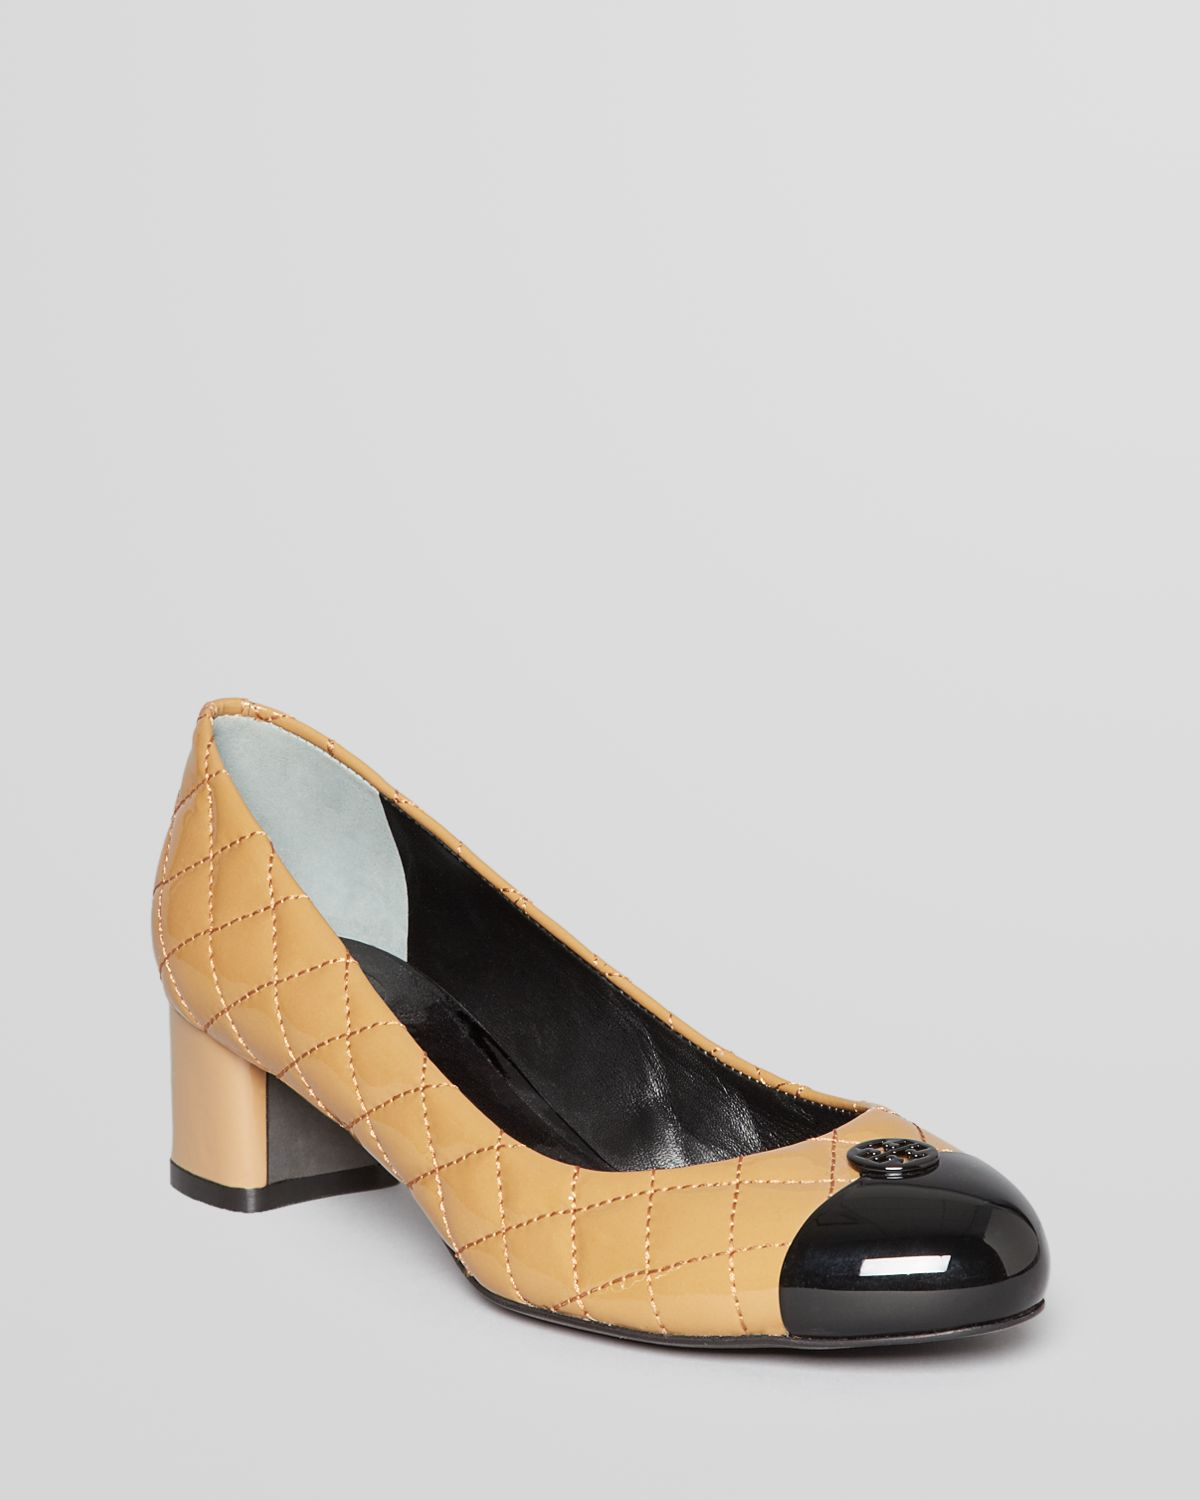 ad956193ebb6 Lyst - Tory Burch Quilted Pumps Kaitlin Low Heel in Brown